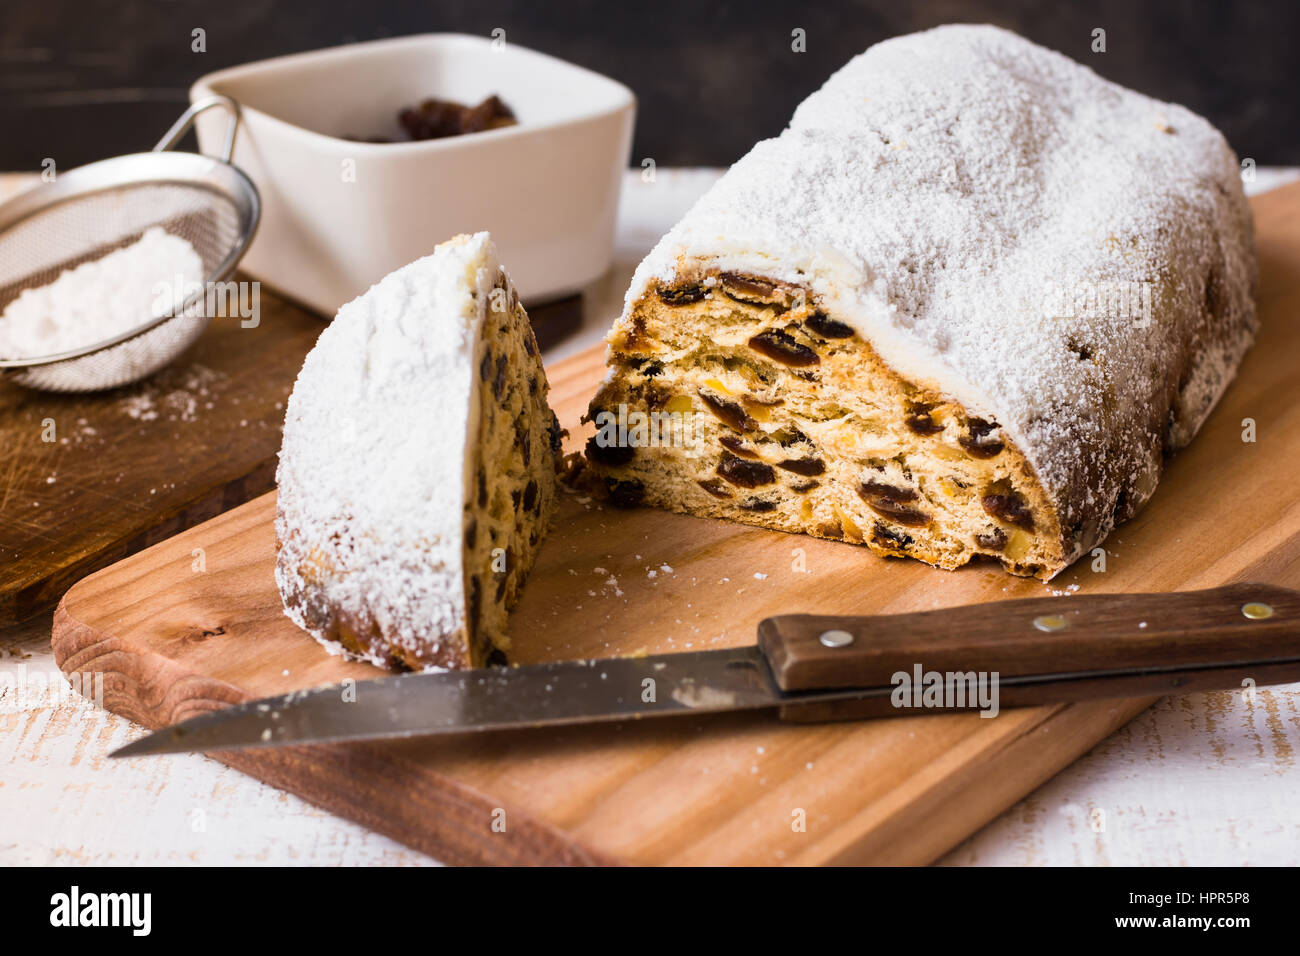 Homemade Christmas stollen cut off piece on wood board with knife, ingredients, sieve with powder, close up - Stock Image